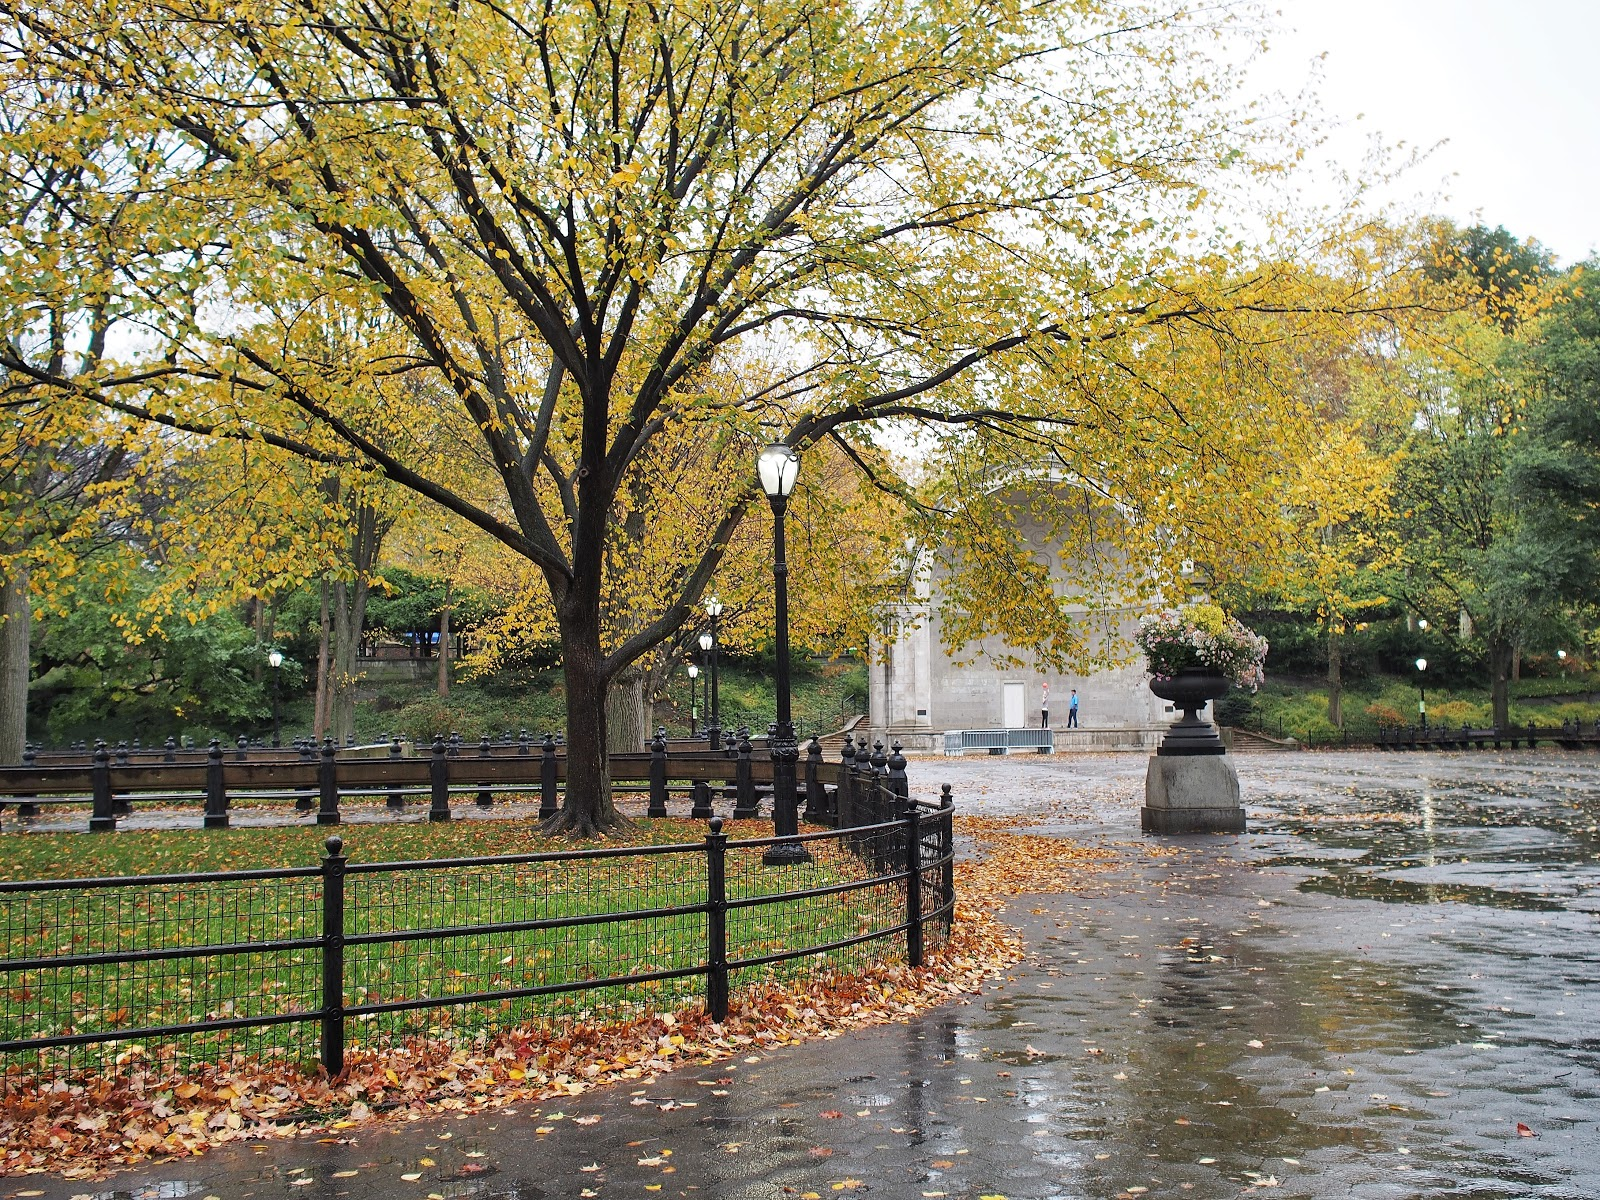 The Bandshell, #thebandshell #centralpark #nyc #fall #fallfoliage #rainyday 2014